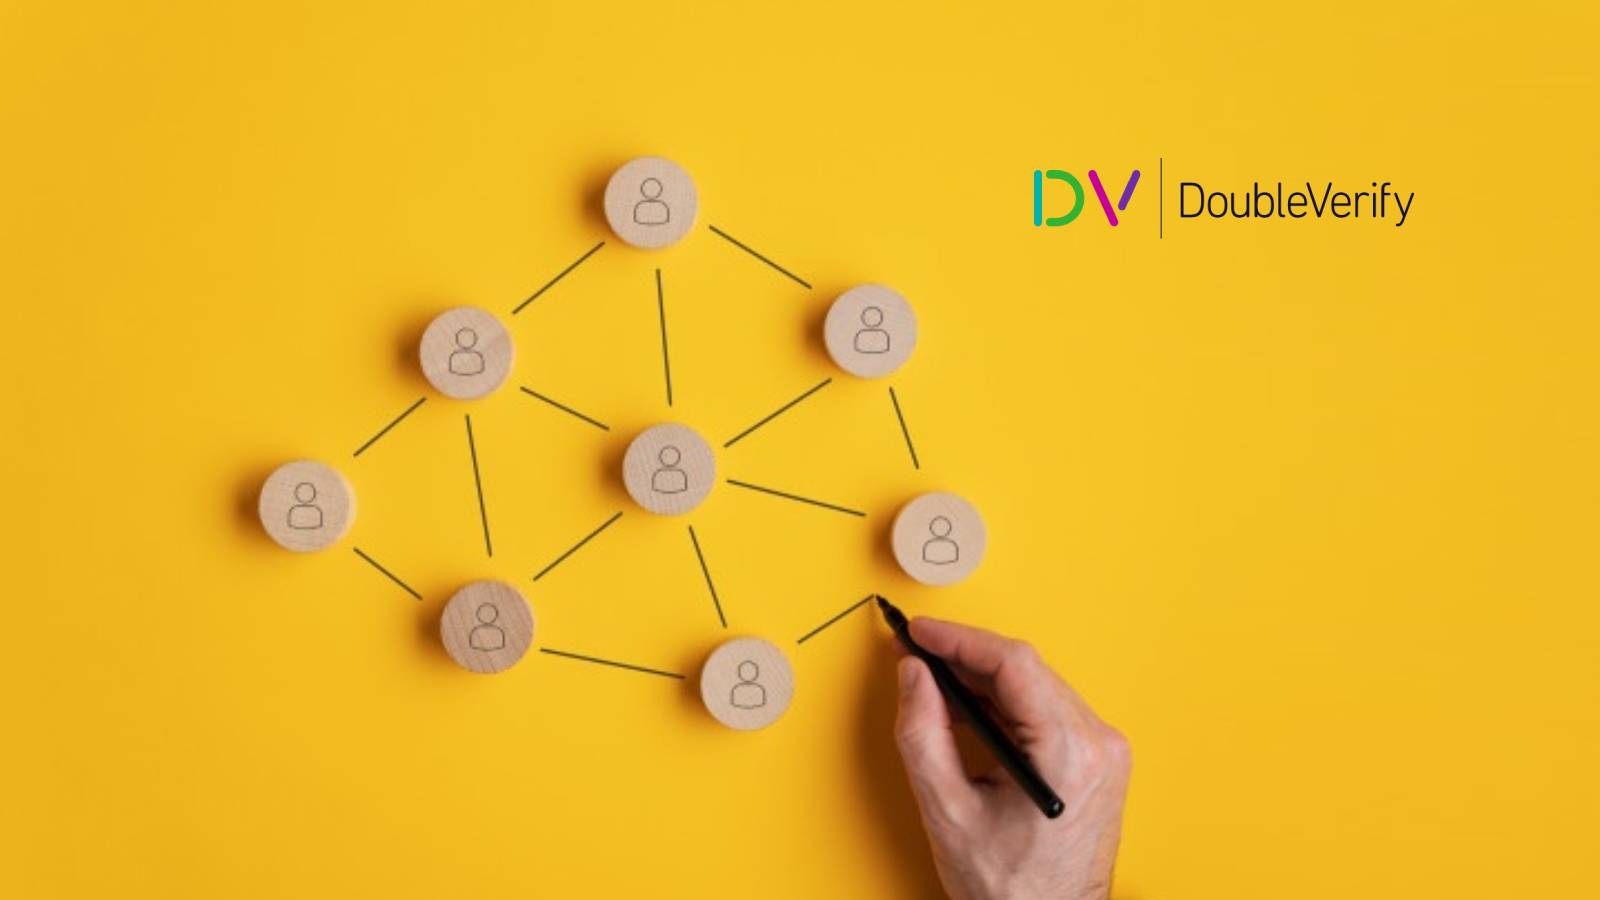 DoubleVerify Announces Exclusive Partnership with Yahoo! JAPAN To Power Their Standard Feature of Ad Fraud and Brand Safety Protection